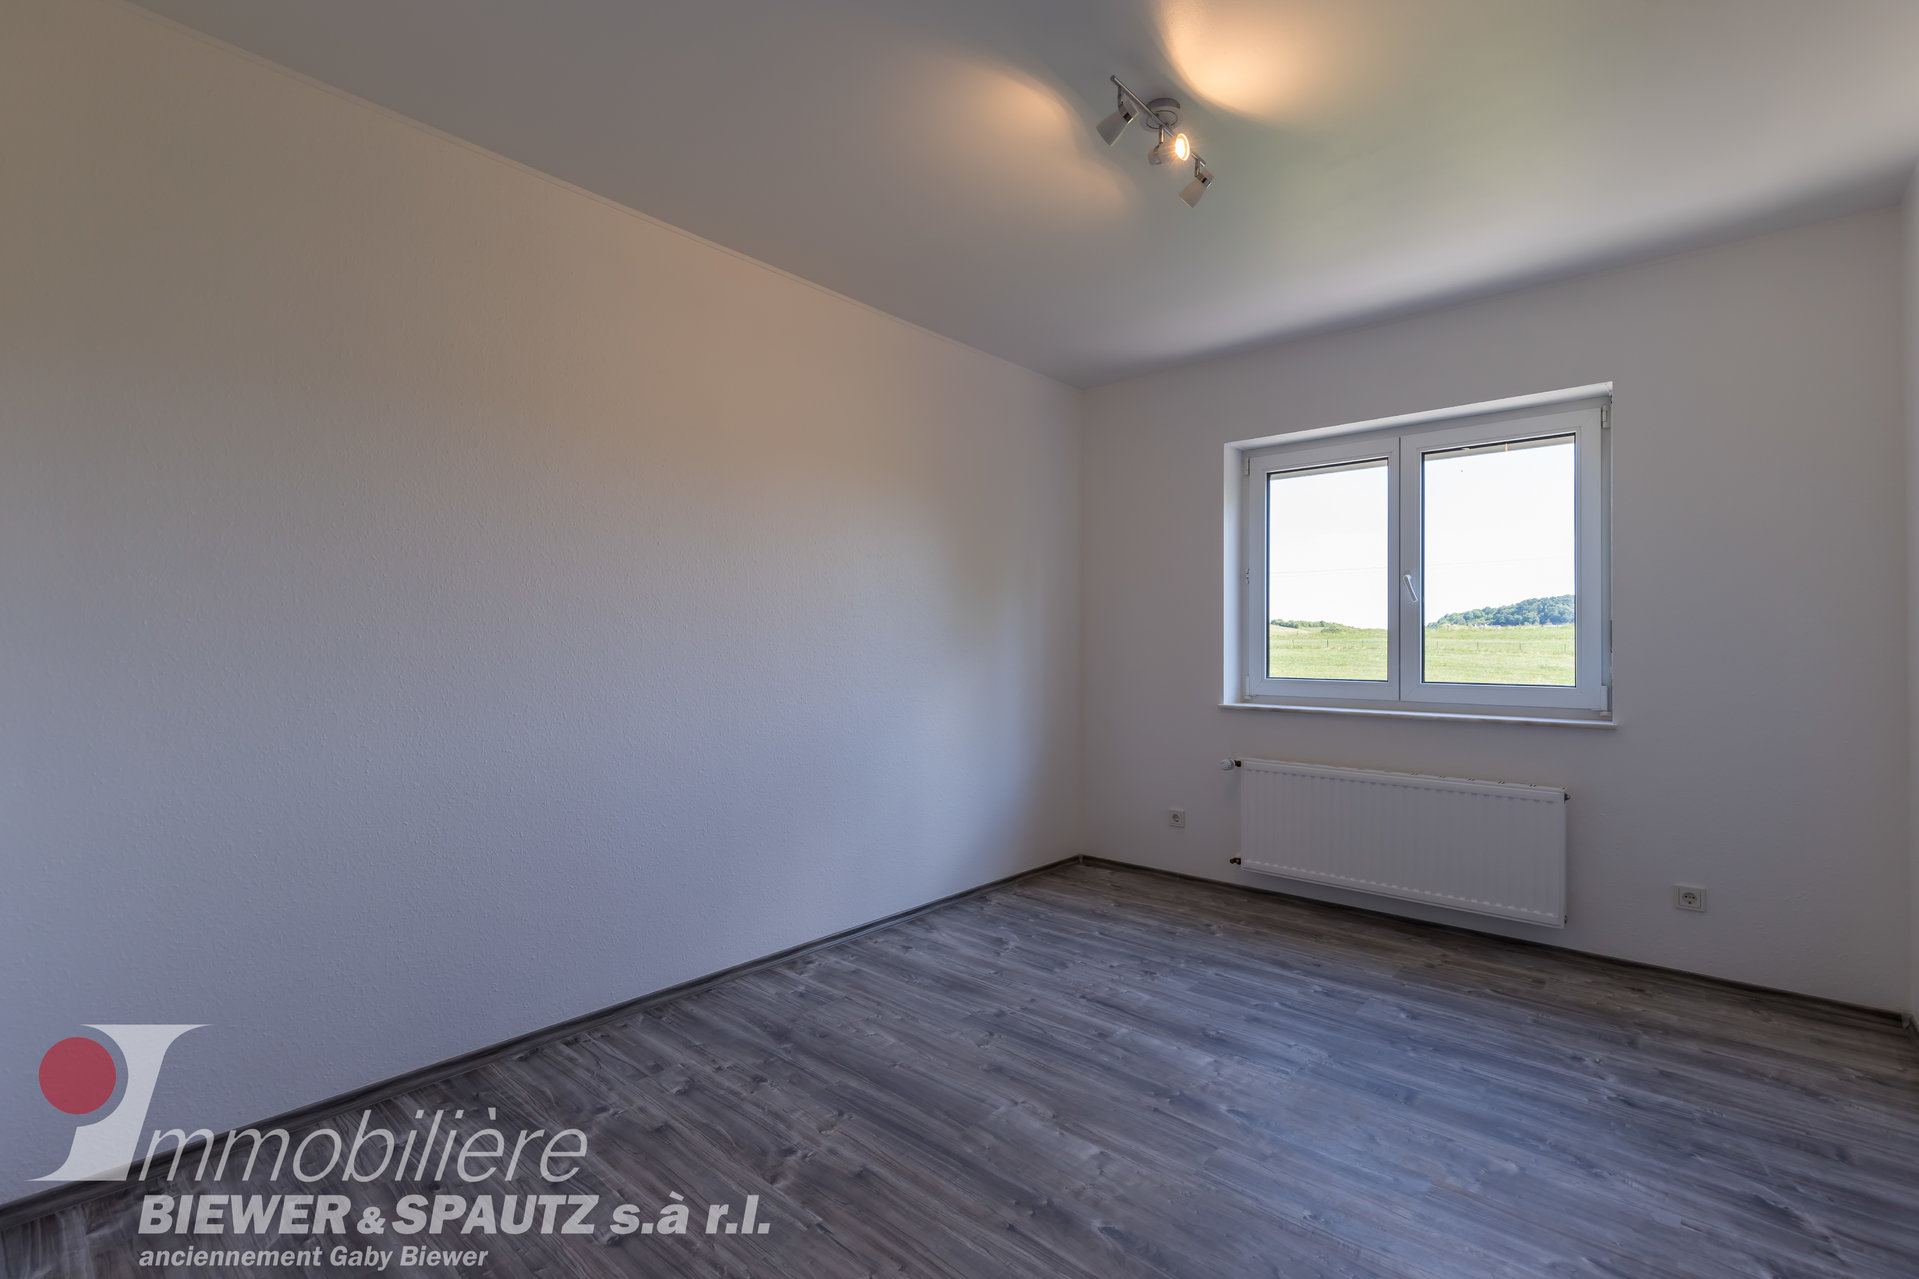 FOR RENT - appartment with 3 bedrooms in Gonderange